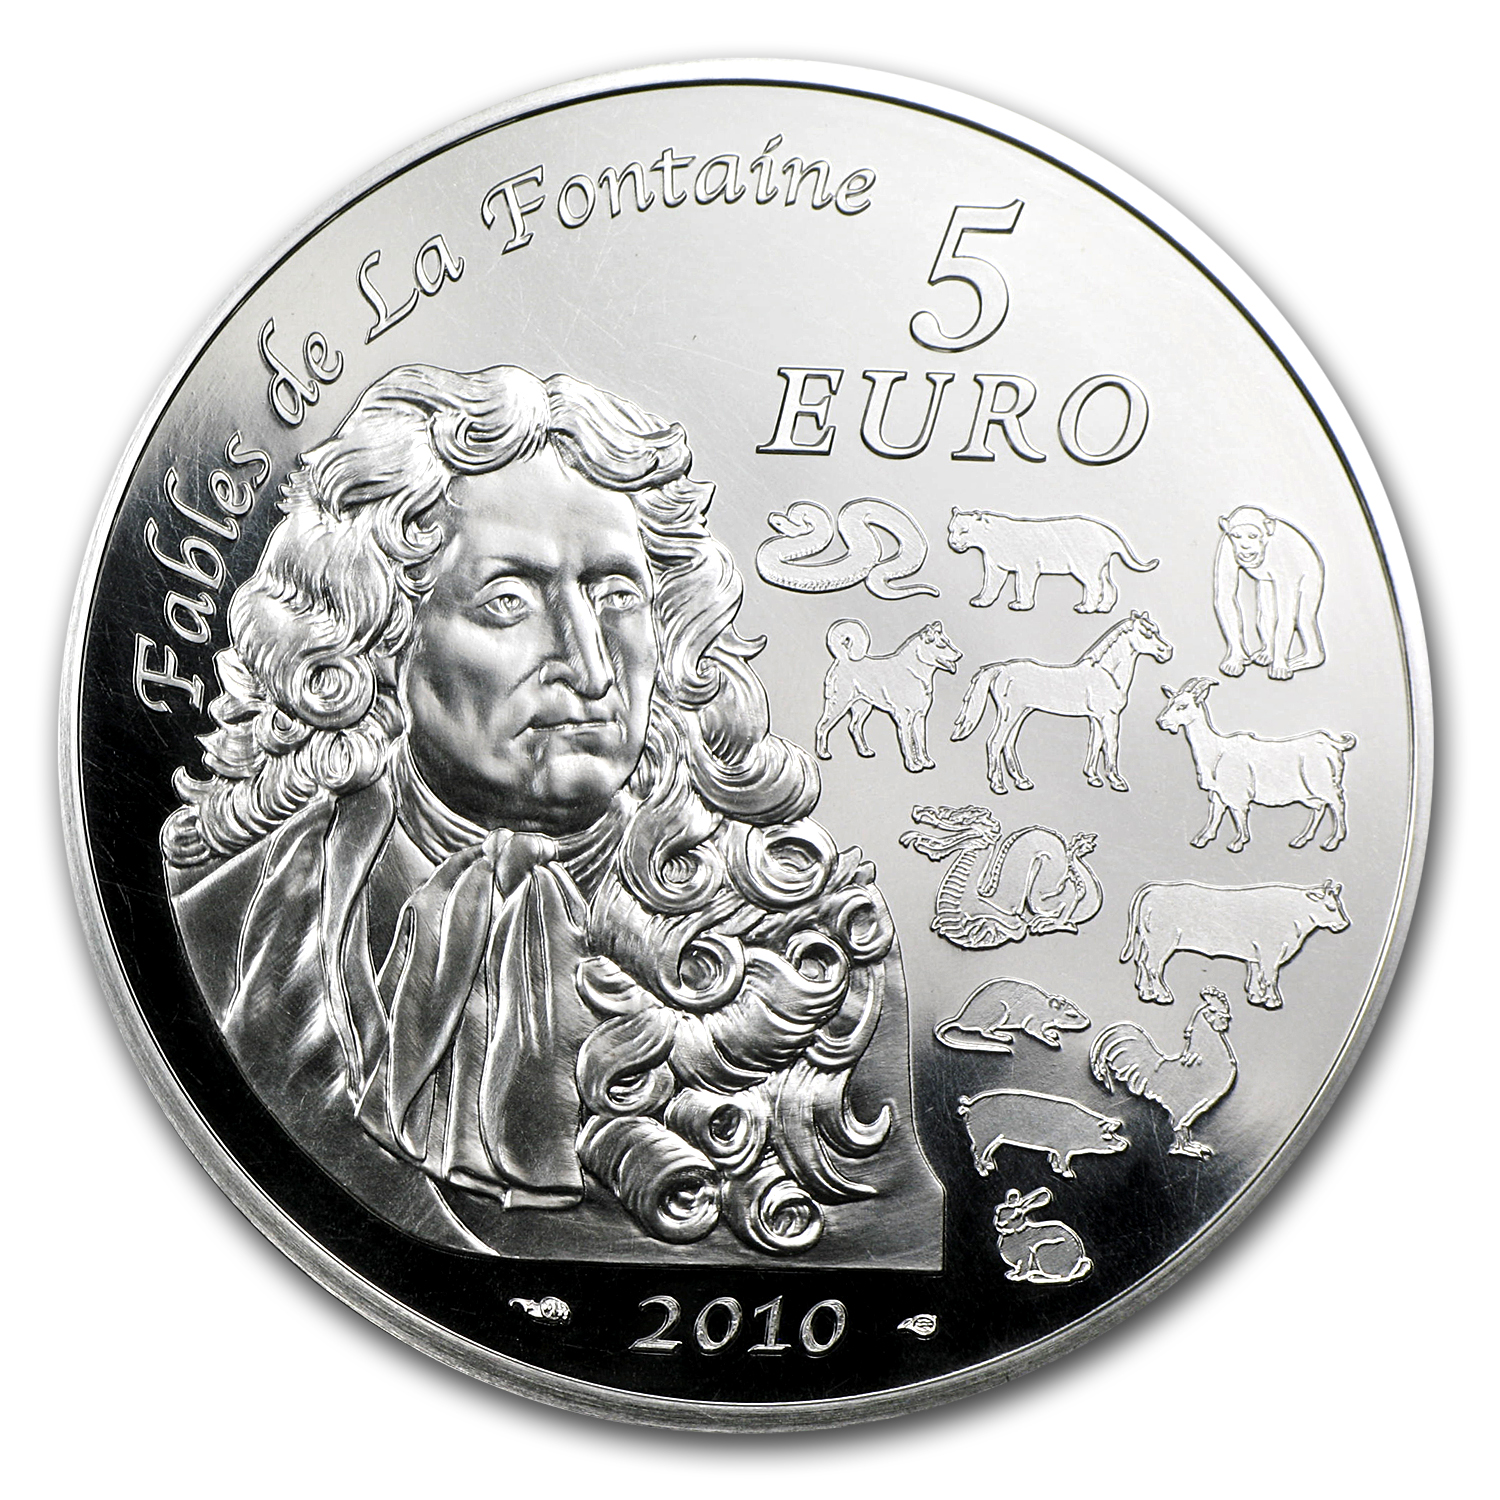 2010 5 Euro Silver France Year of the Tiger Coin - Lunar Series